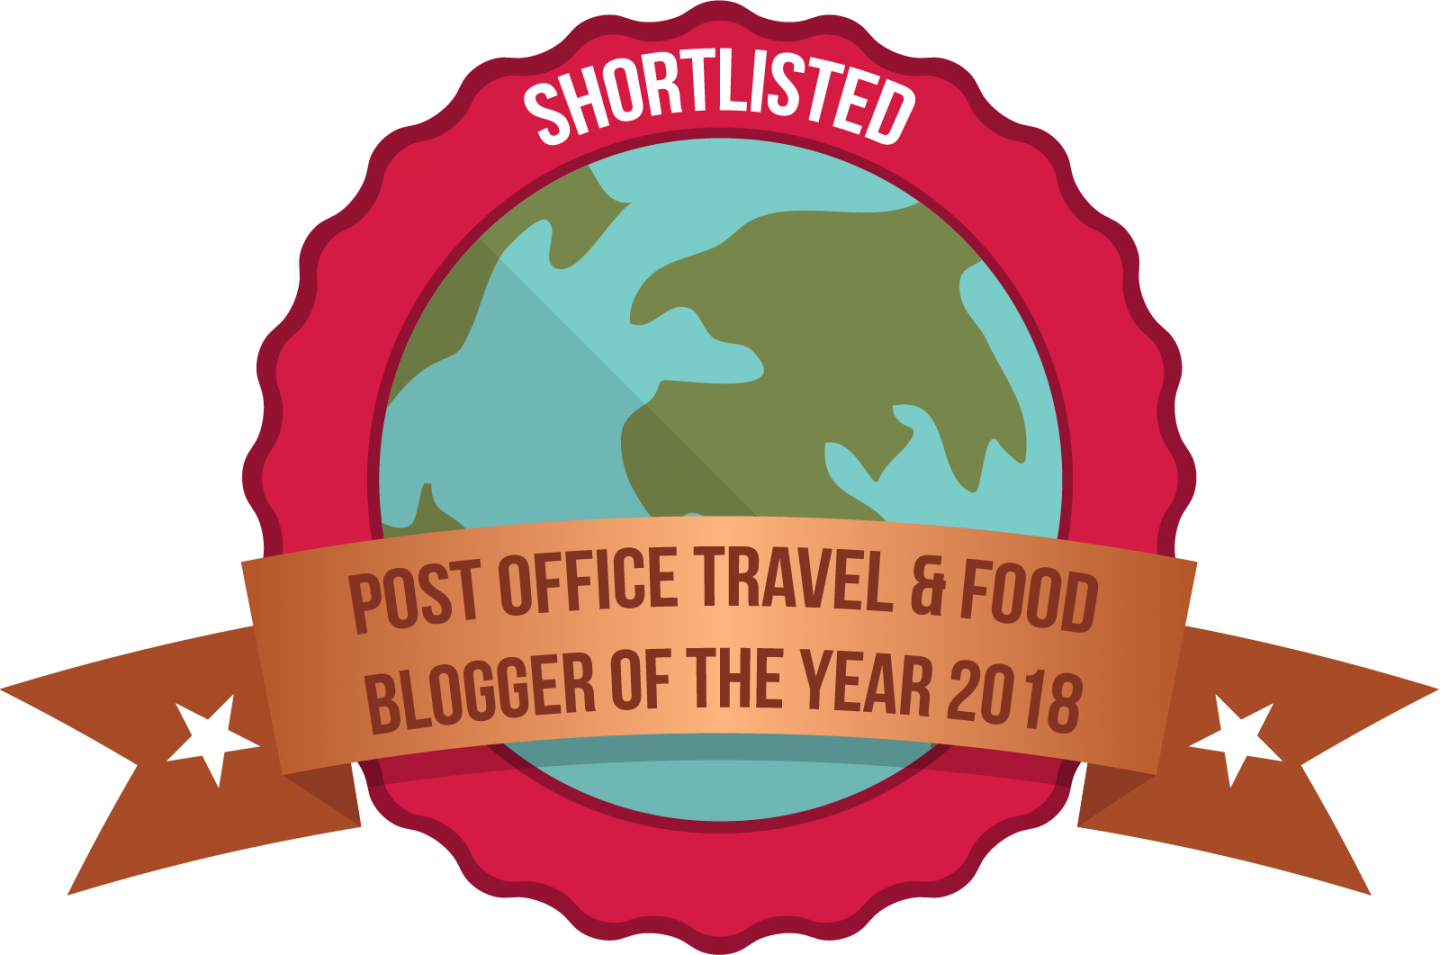 I'm Shortlisted in Post Office Travel Blogger Awards 2018!